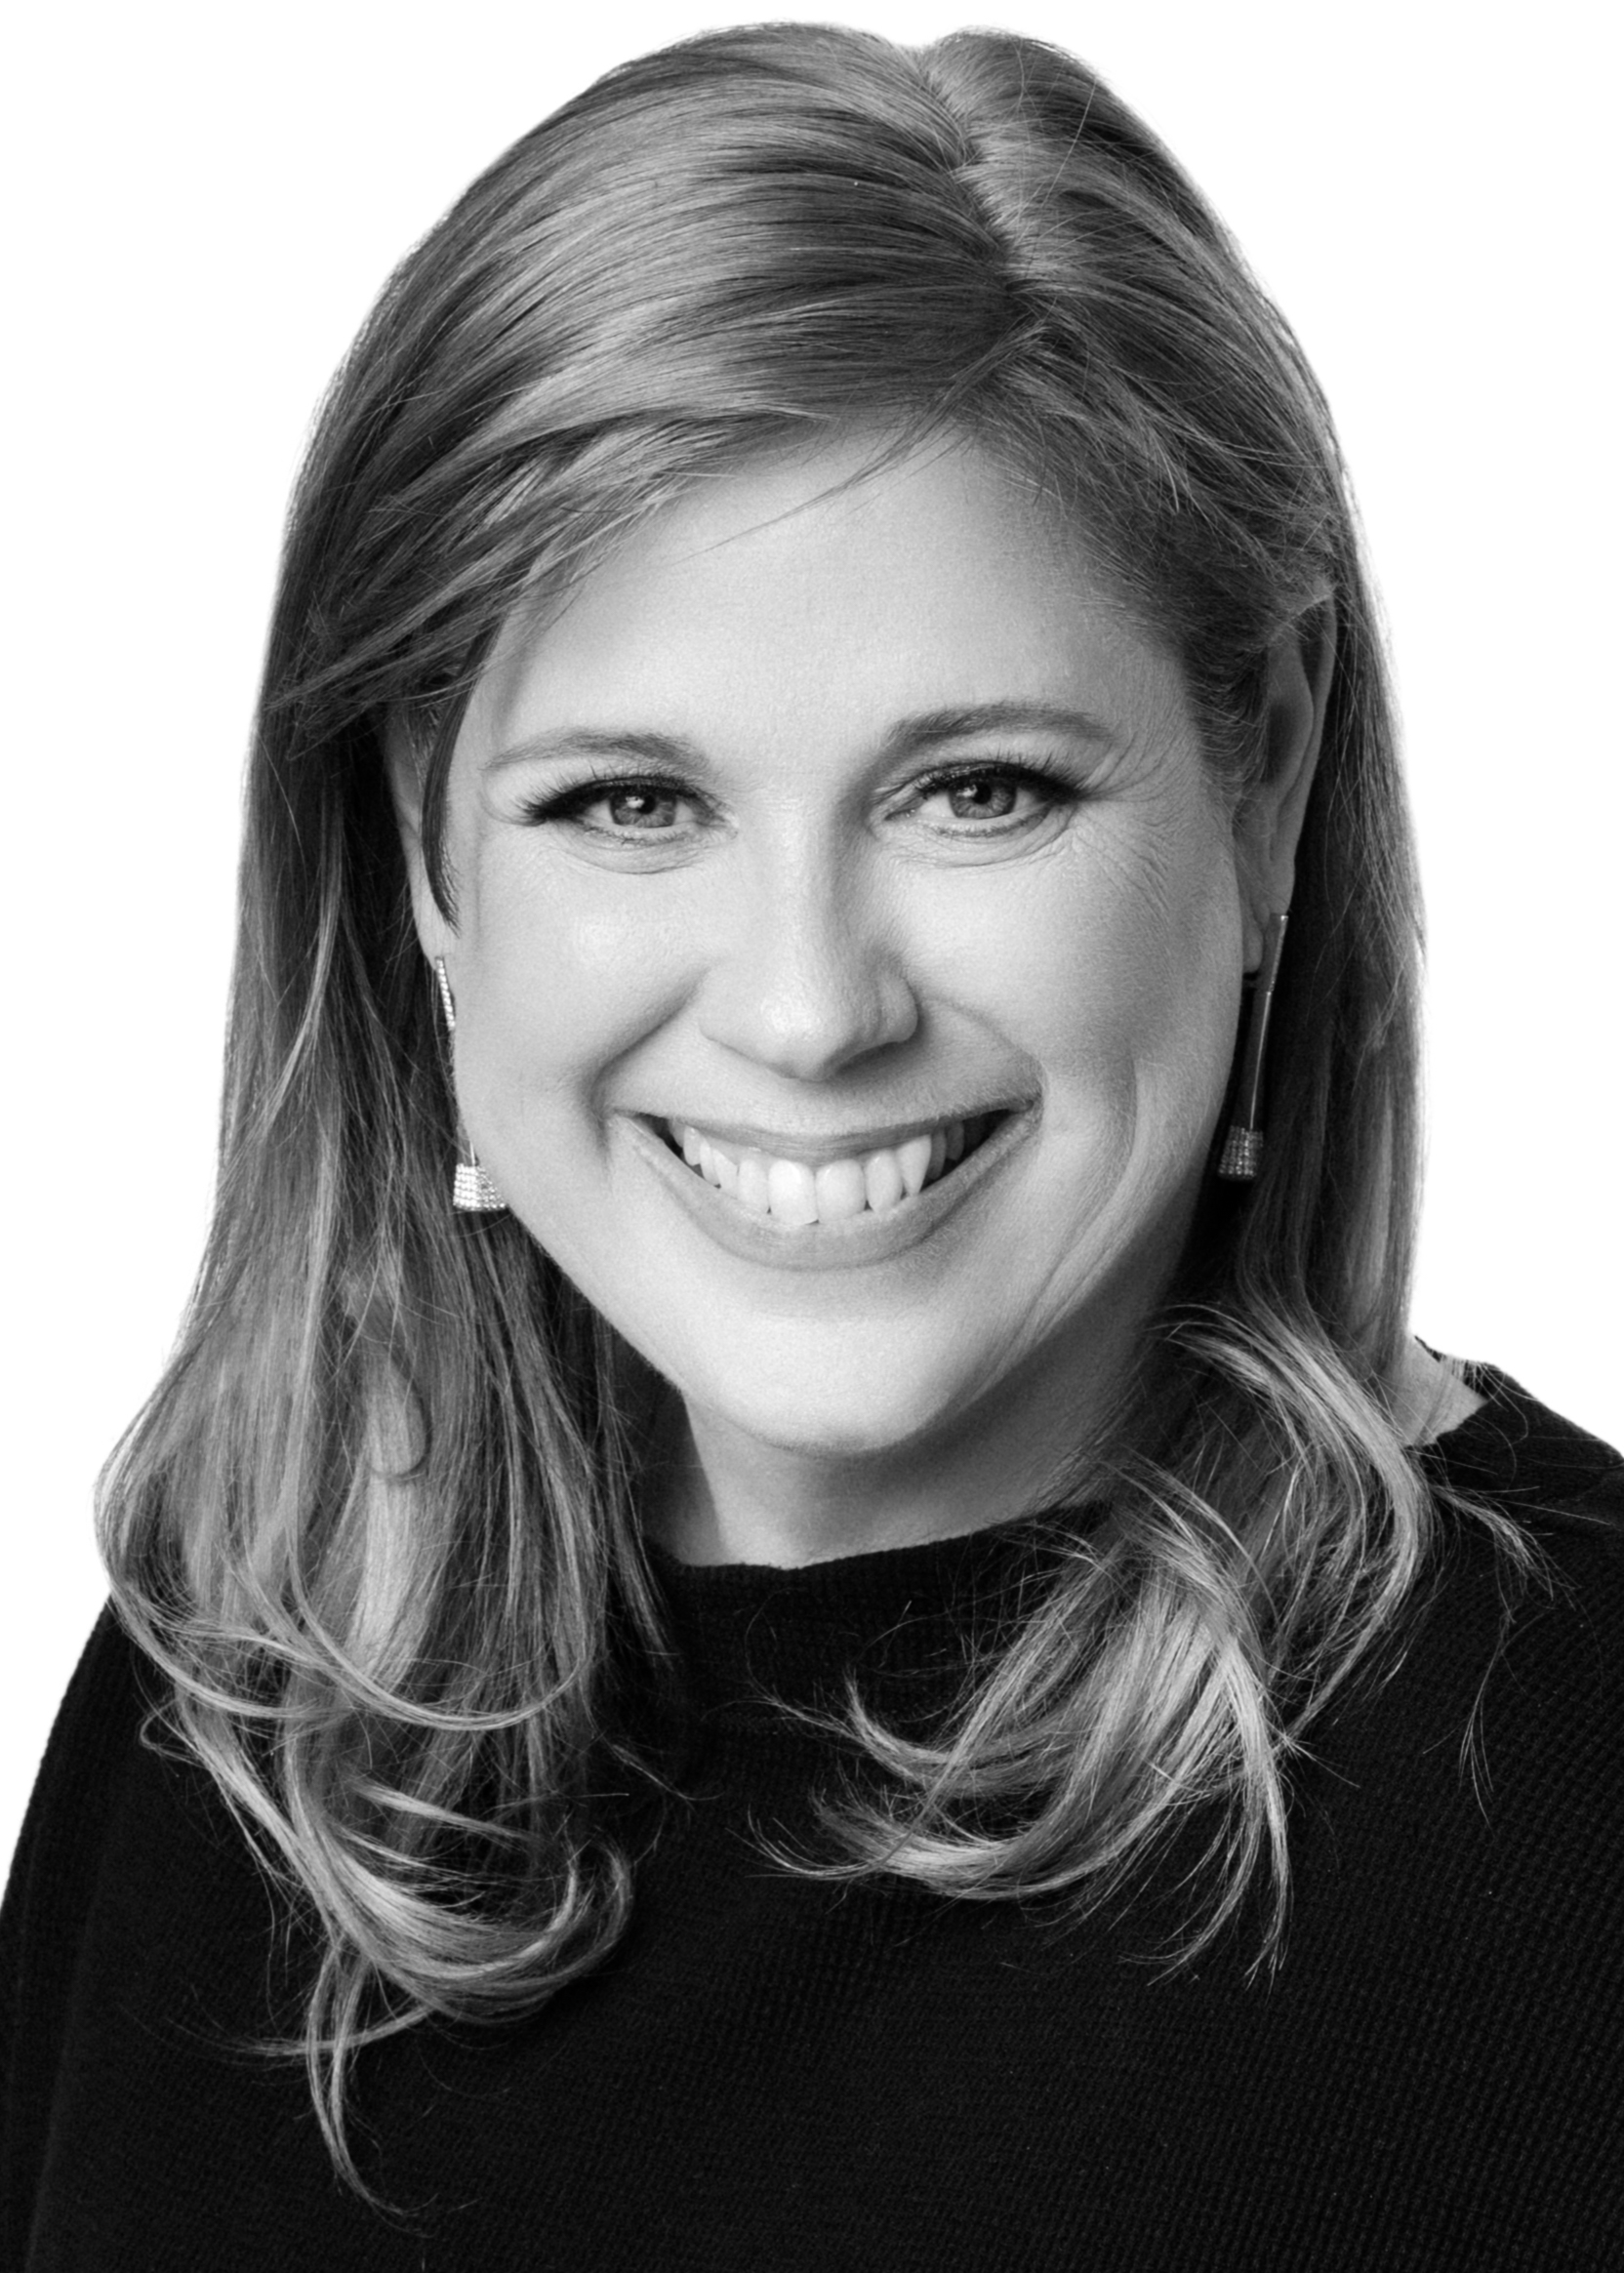 Katie Kinsella - Based in New York, Katie brings over 20 years of experience of marketing communications, media strategy and public relations.